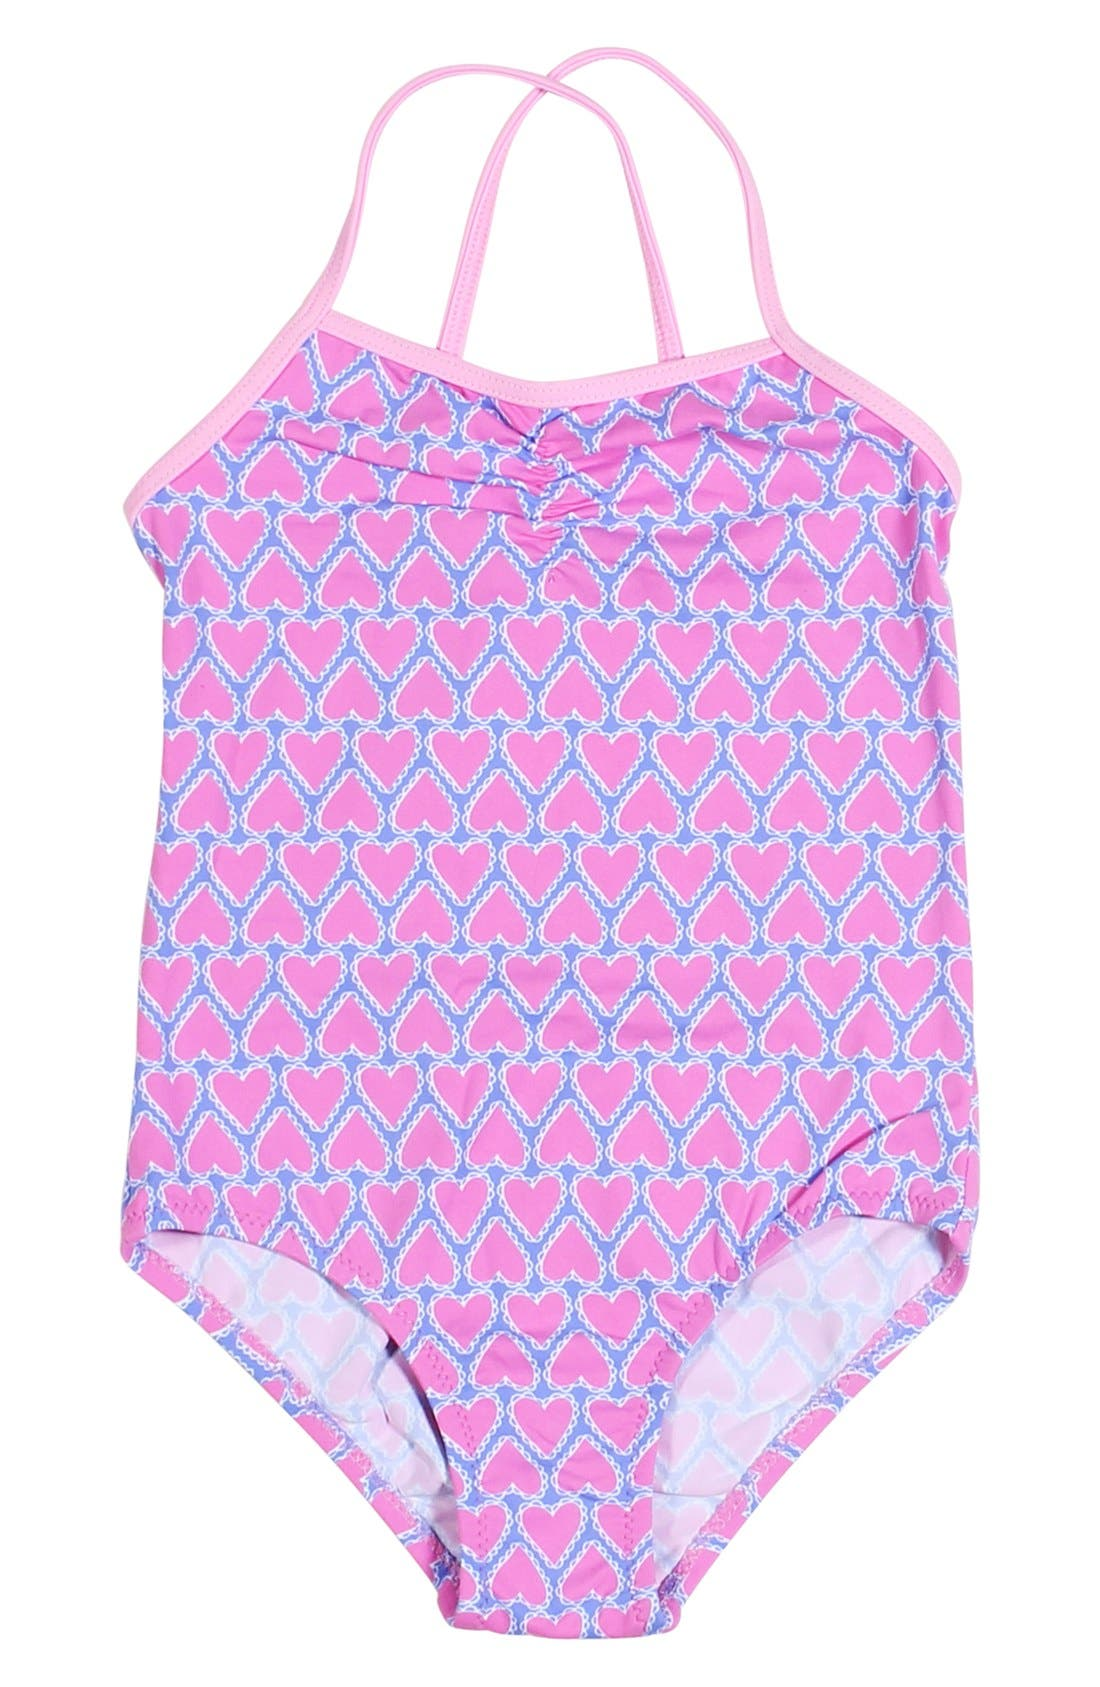 Main Image - Stella Cove Heart Print One-Piece Swimsuit (Big Girls)